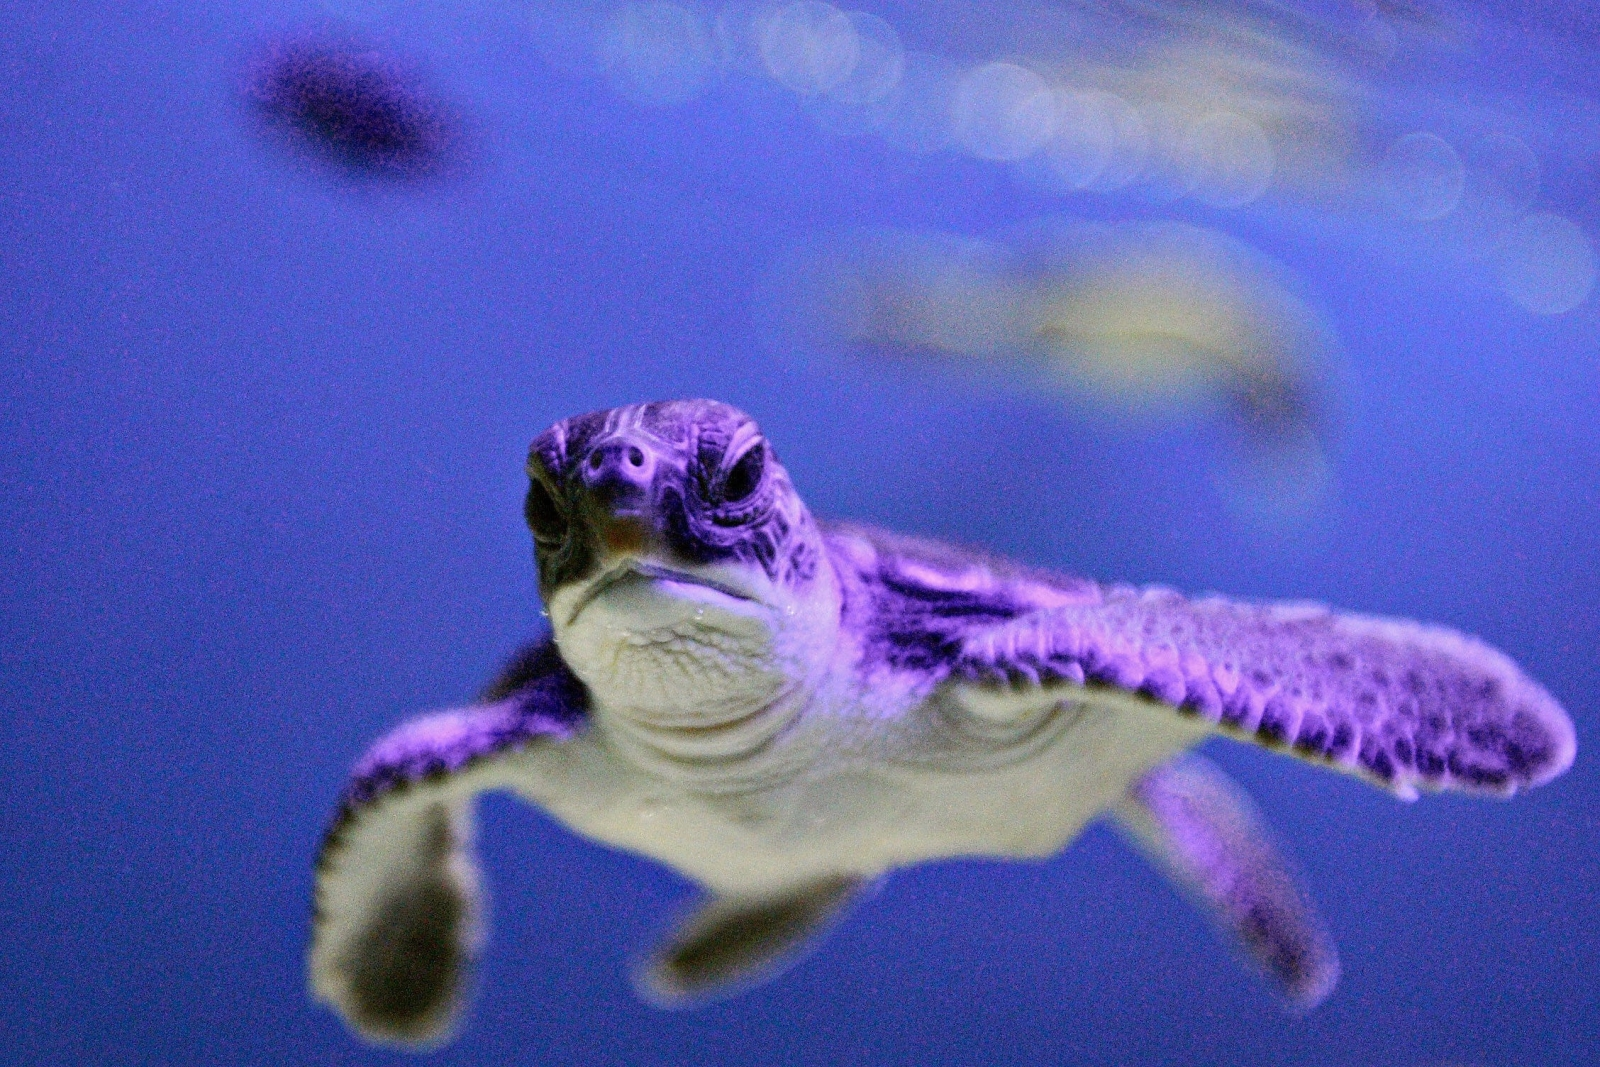 World Turtle Day 2016: Why are sea turtles facing extinction?